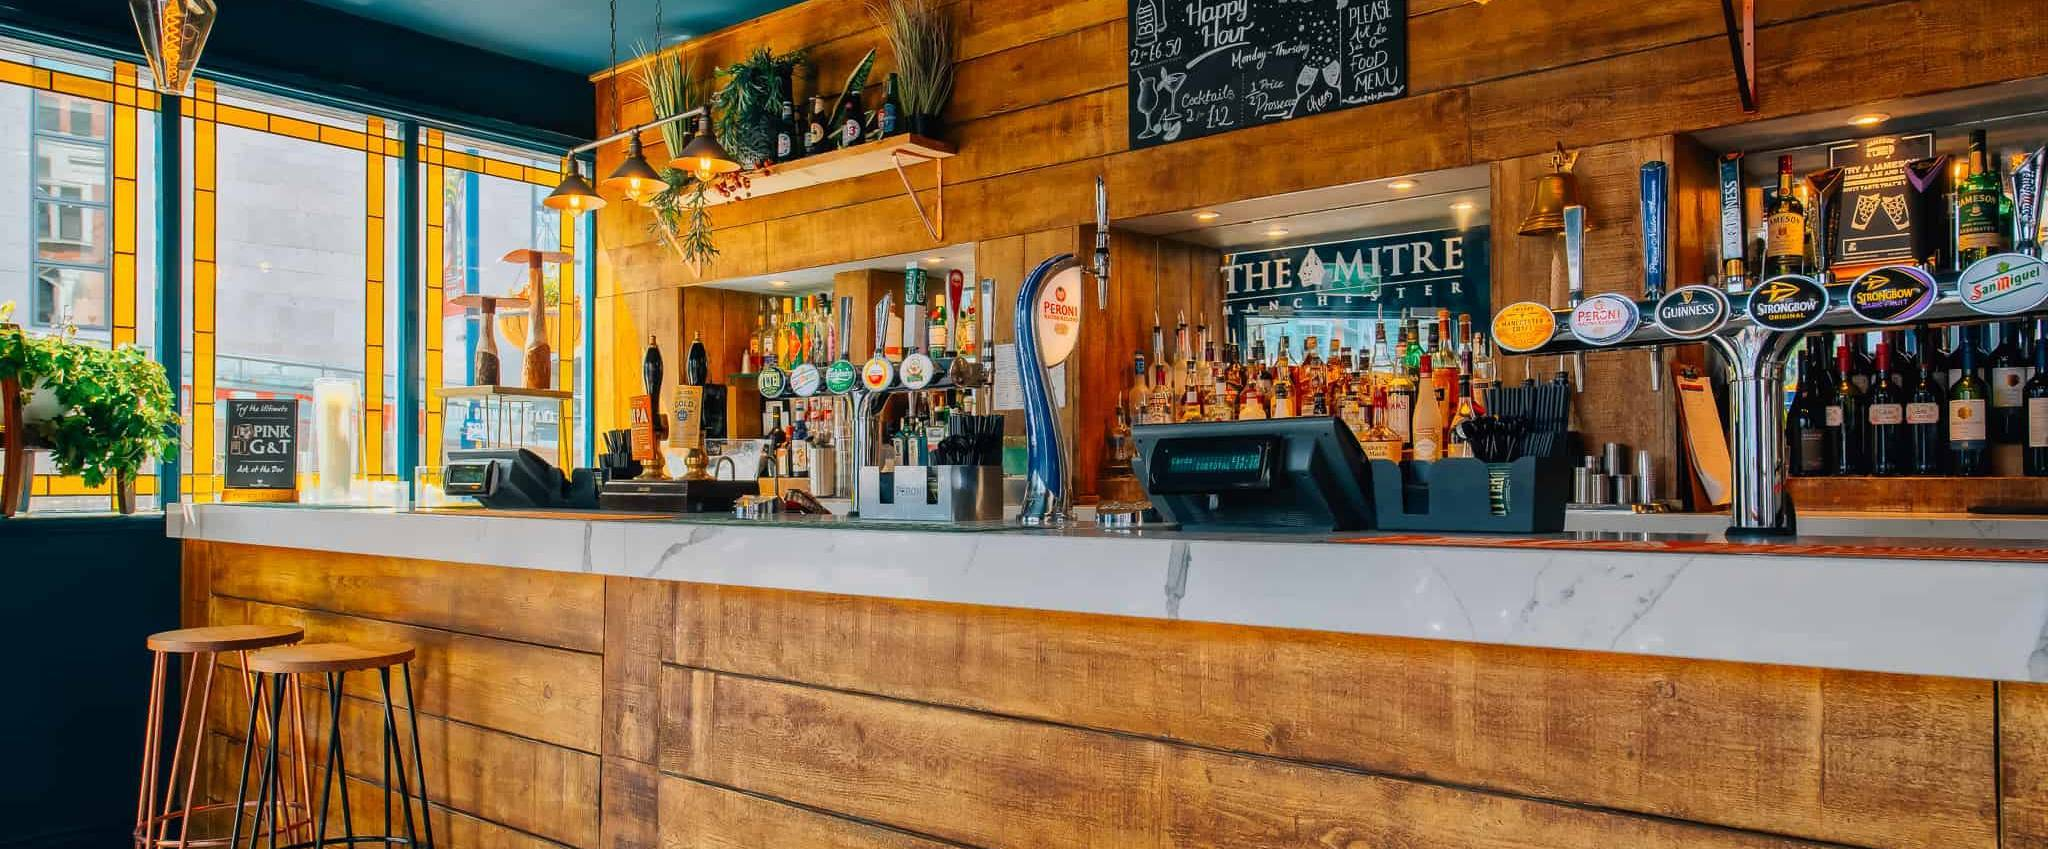 The Mitre Bar and Restaurant